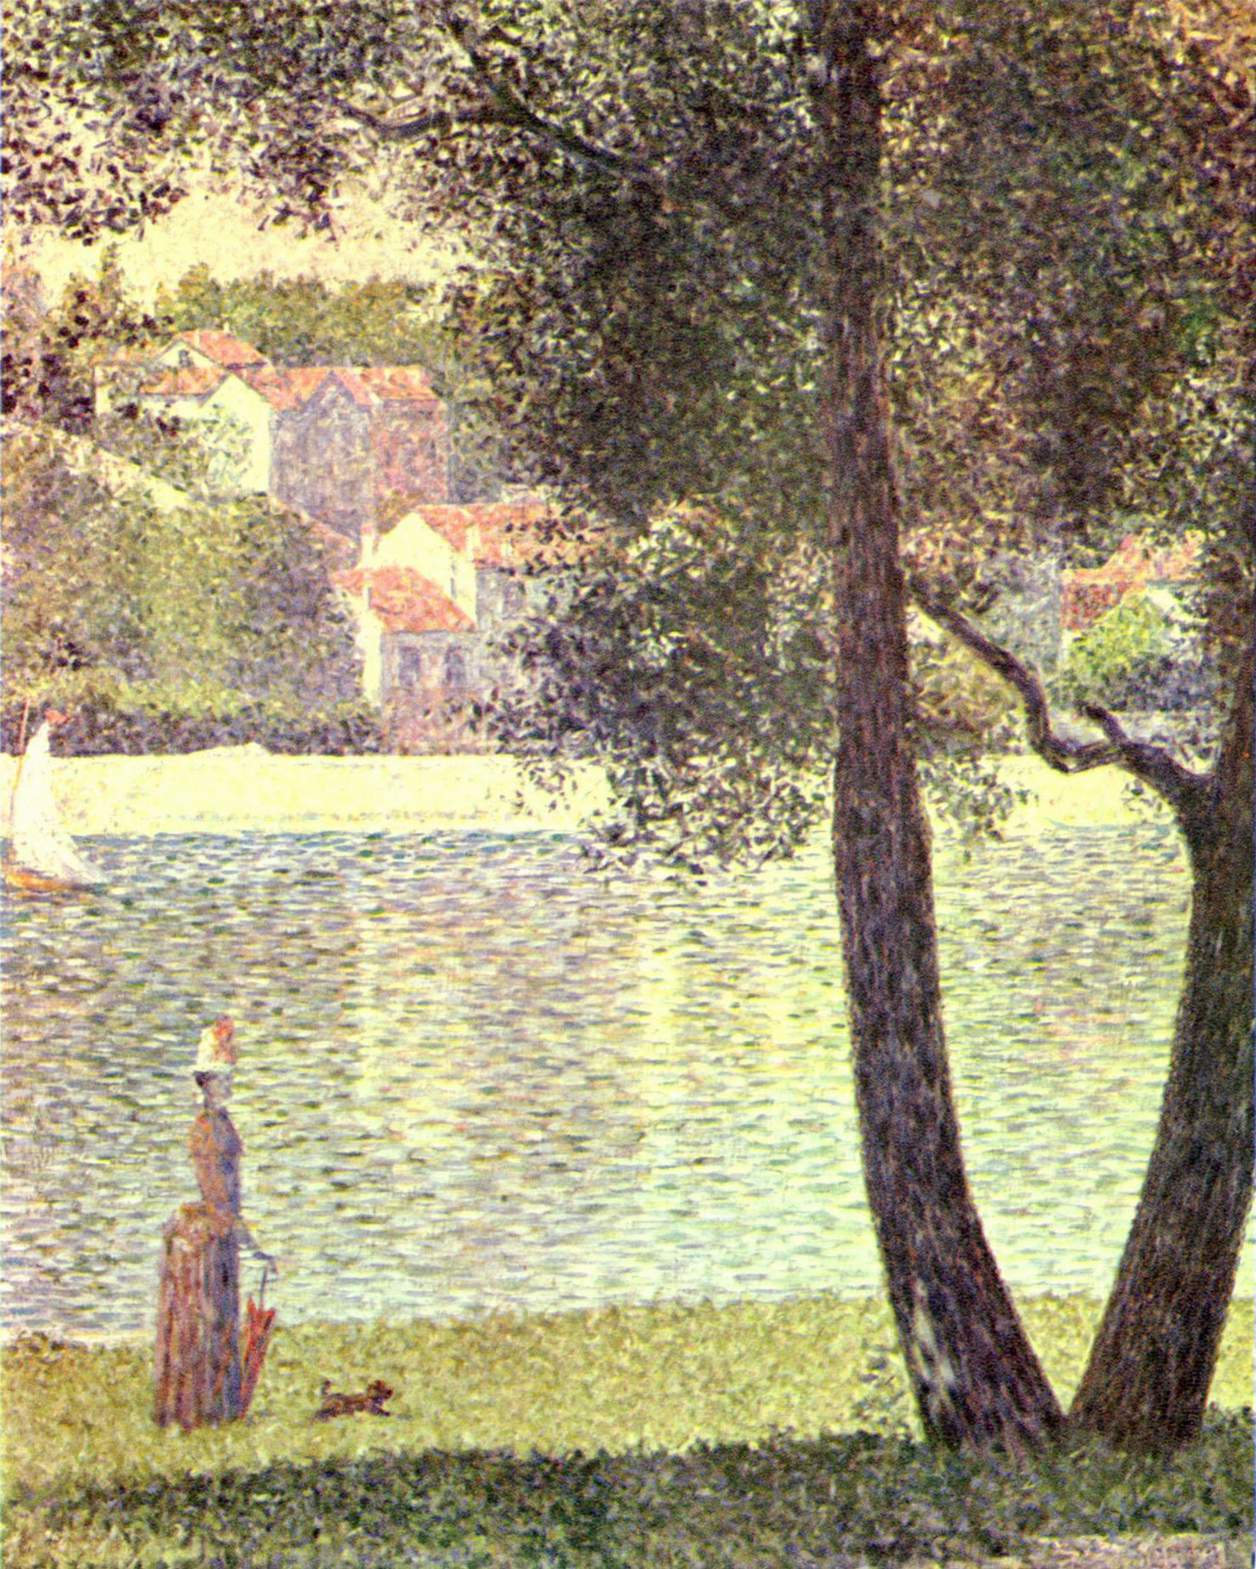 https://upload.wikimedia.org/wikipedia/commons/c/c0/Georges_Seurat_027.jpg